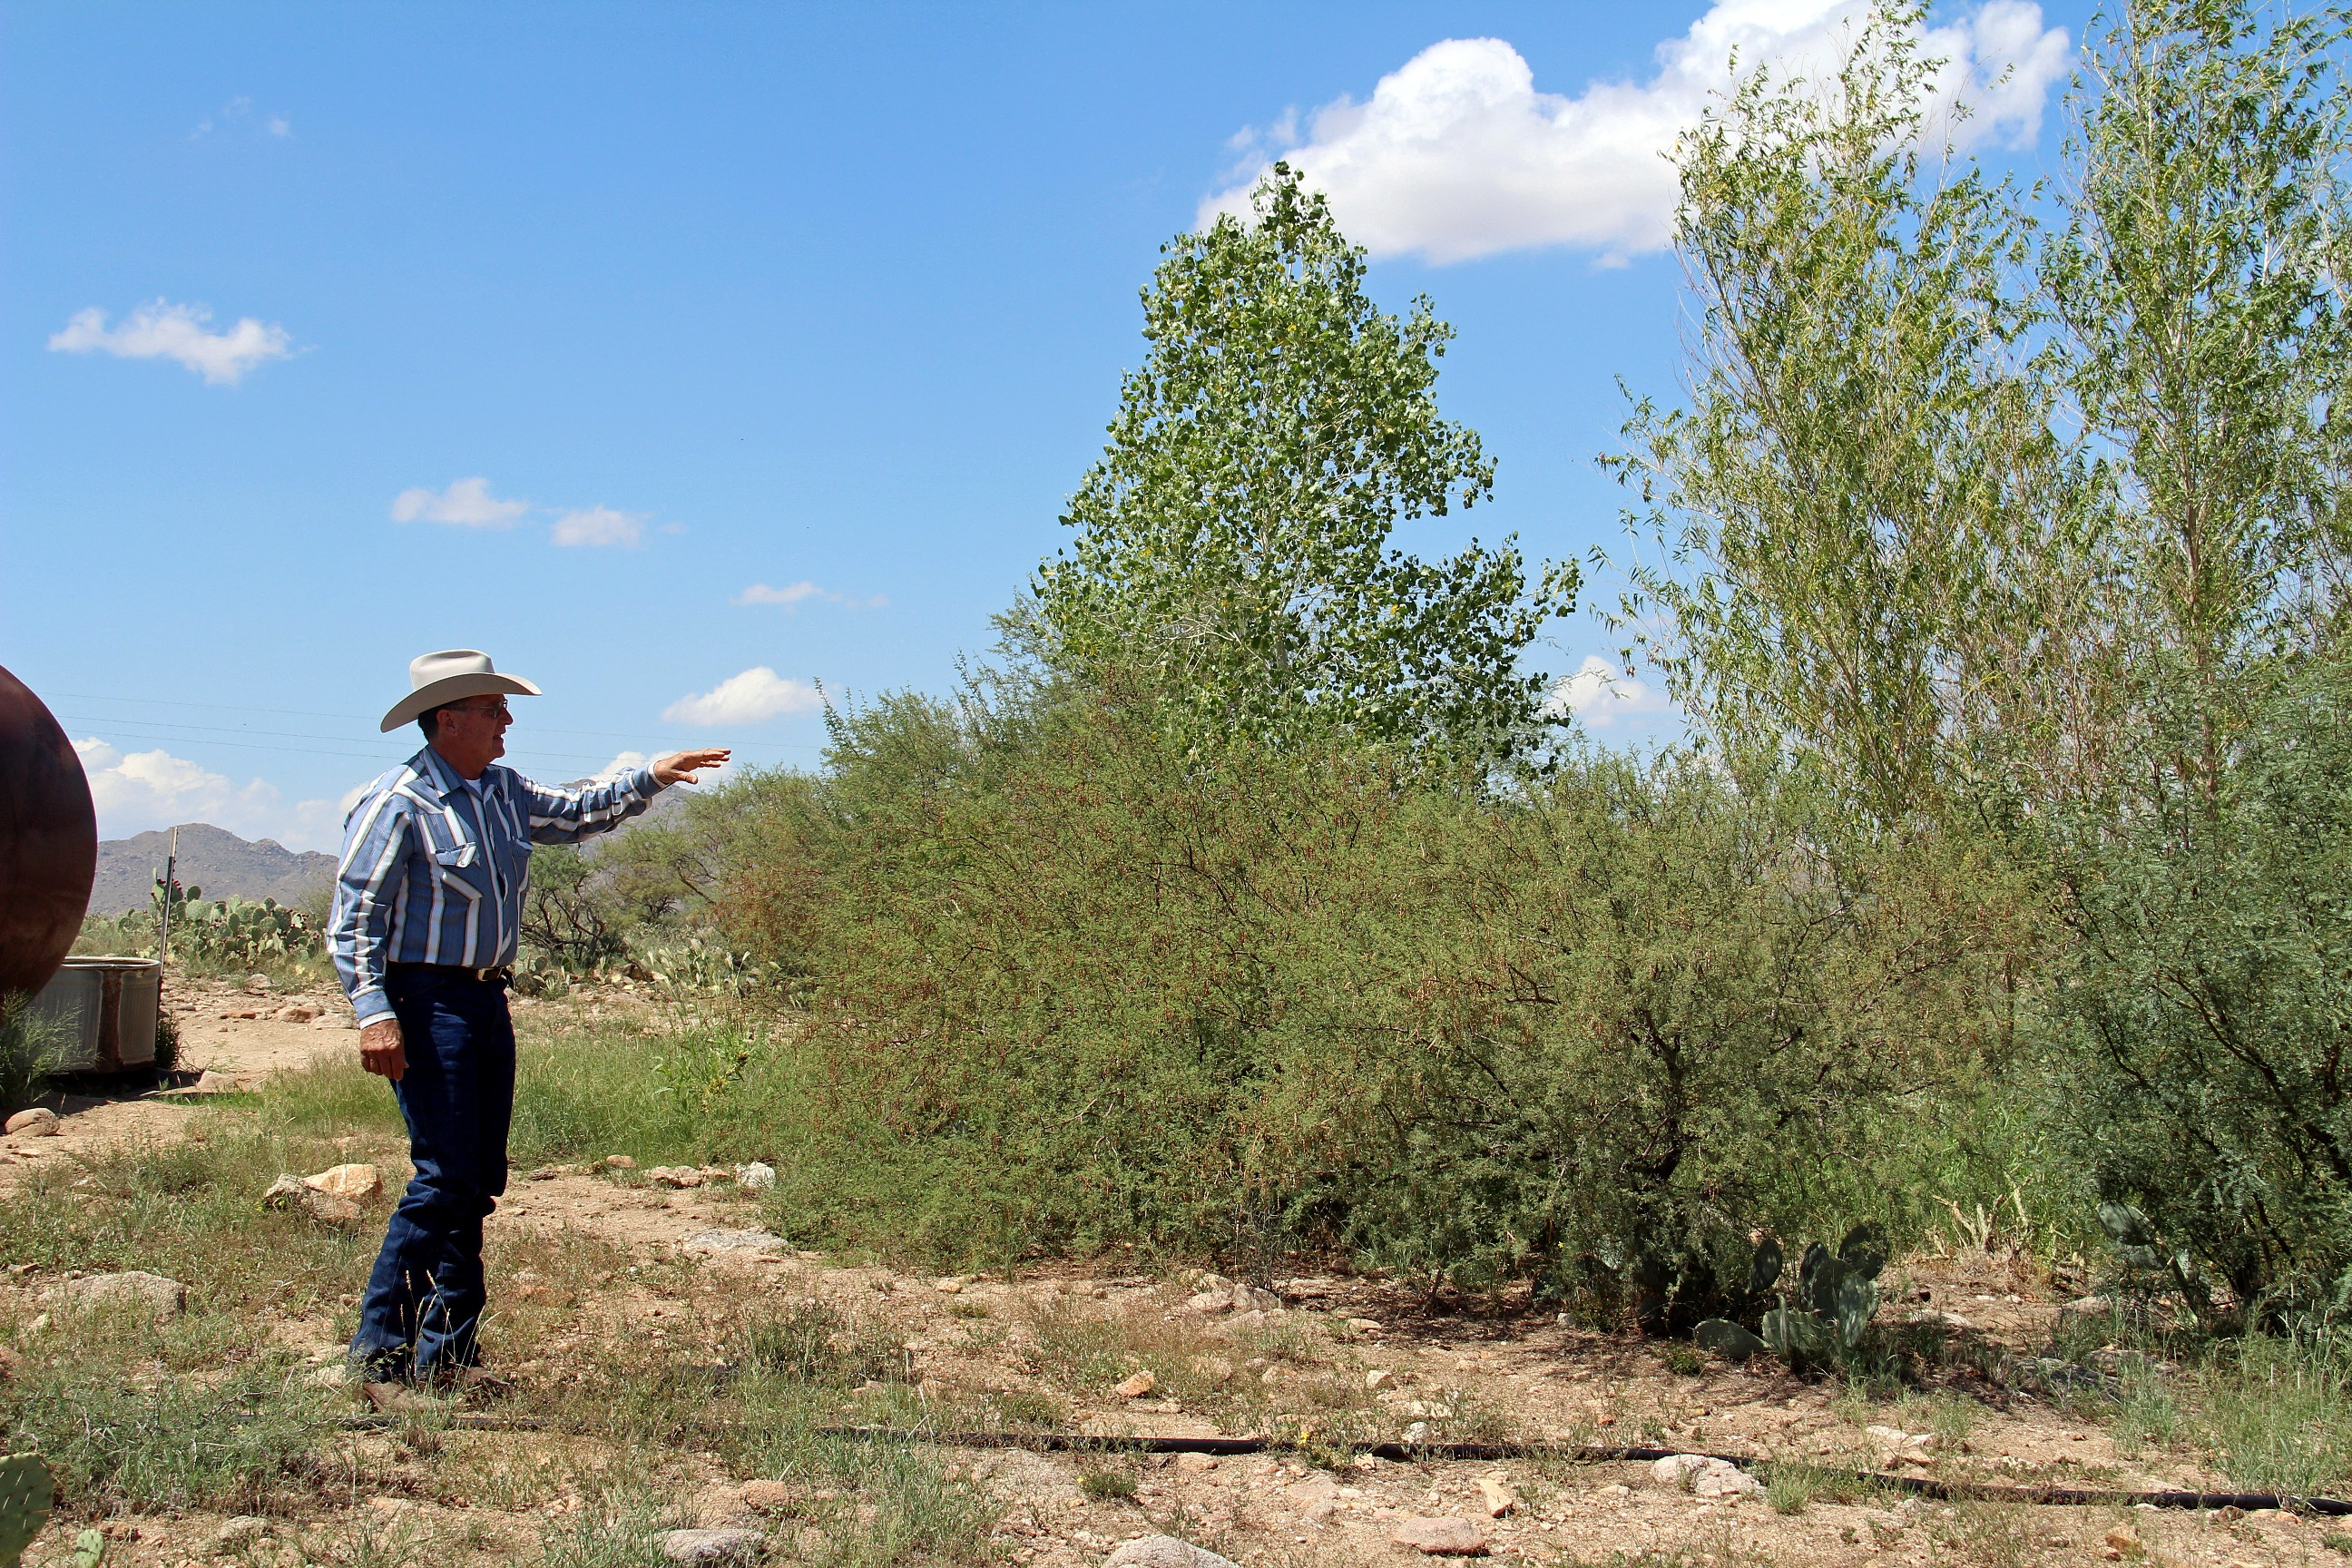 Over the course of three years, a riparian area has grown around the water tanks voluntarily.